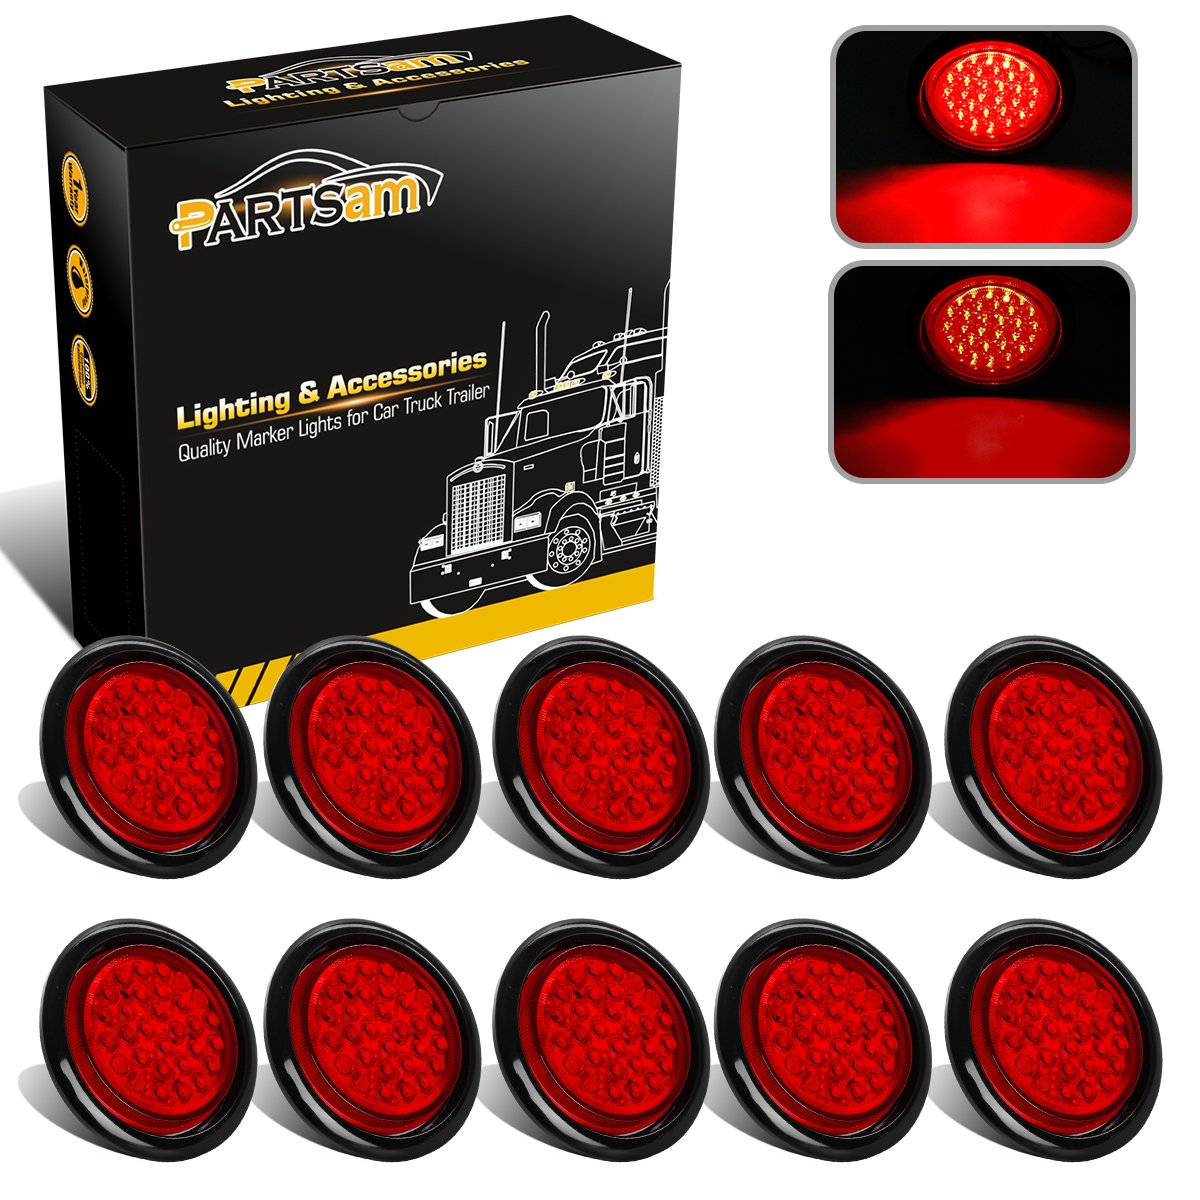 Partsam 10pcs 4' Red 30 LED Truck Trailer Round Stop Turn Tail Light Marker with Grommet & Wiring, for RV Jeep Trucks Pickups Red Led Flush Mounted Sealed Turn Signal Lights Taillights